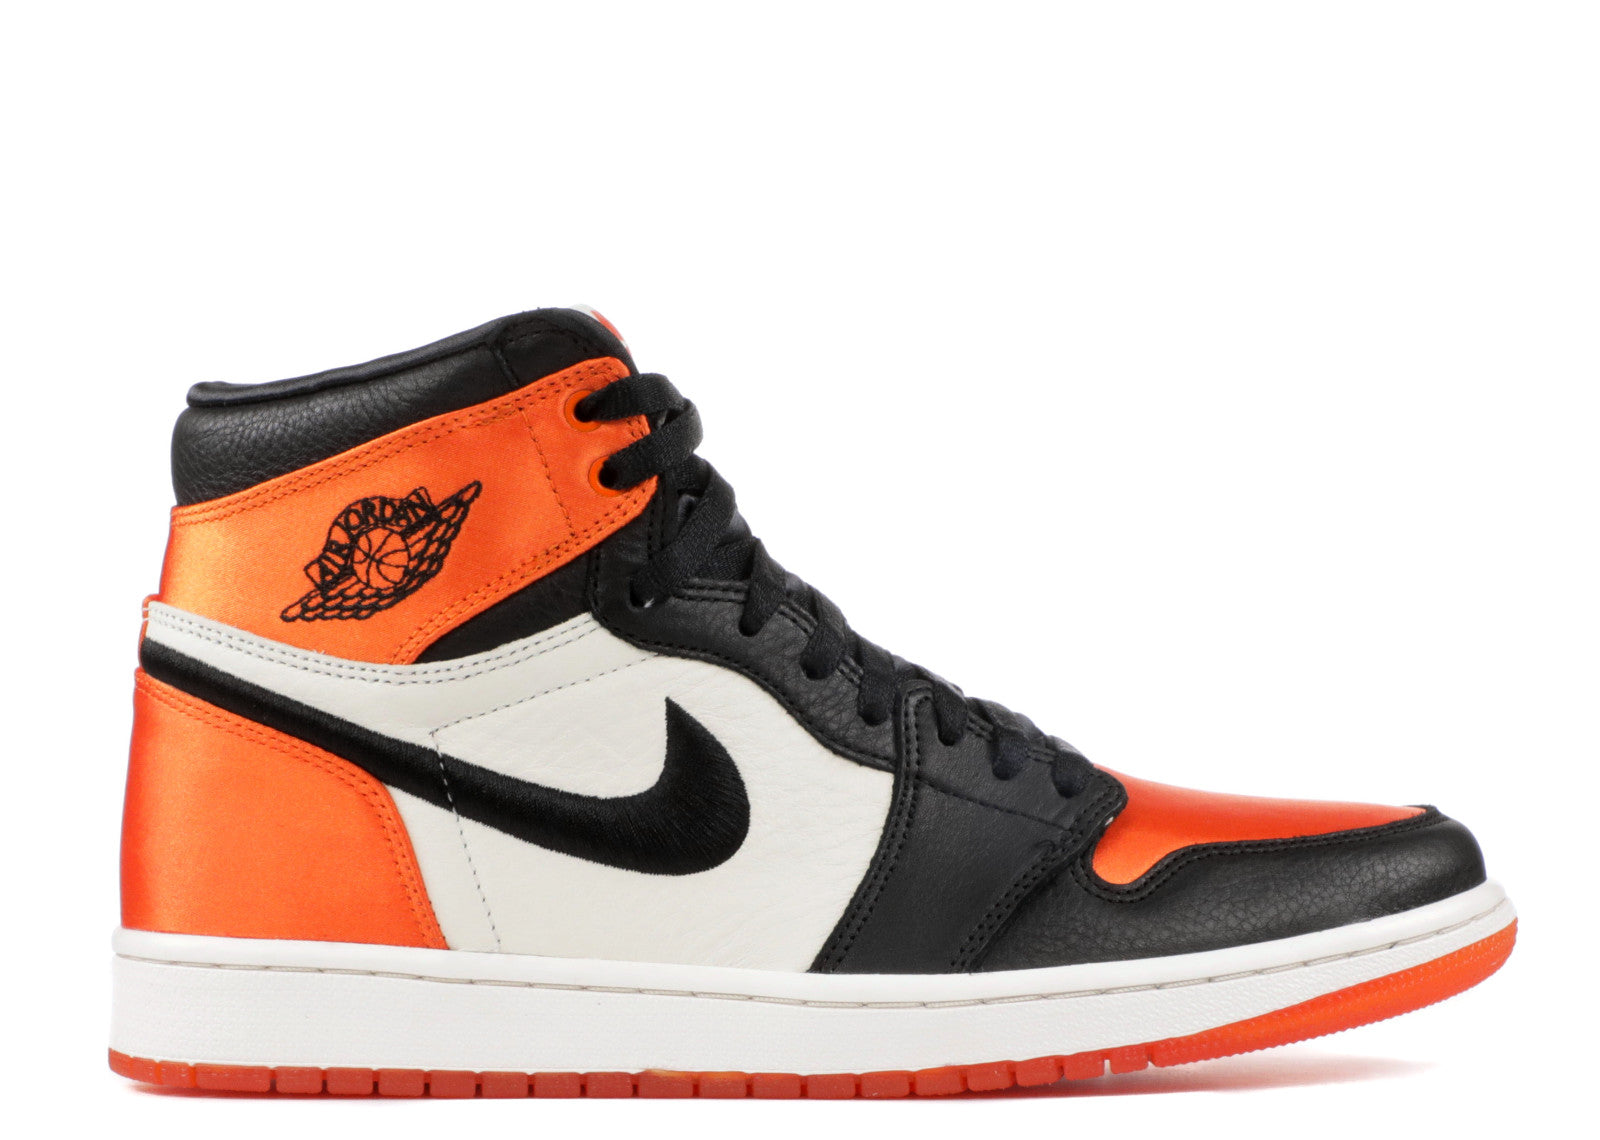 Nike Air Jordan 1 Retro High OG 'Satin Shattered Backboard